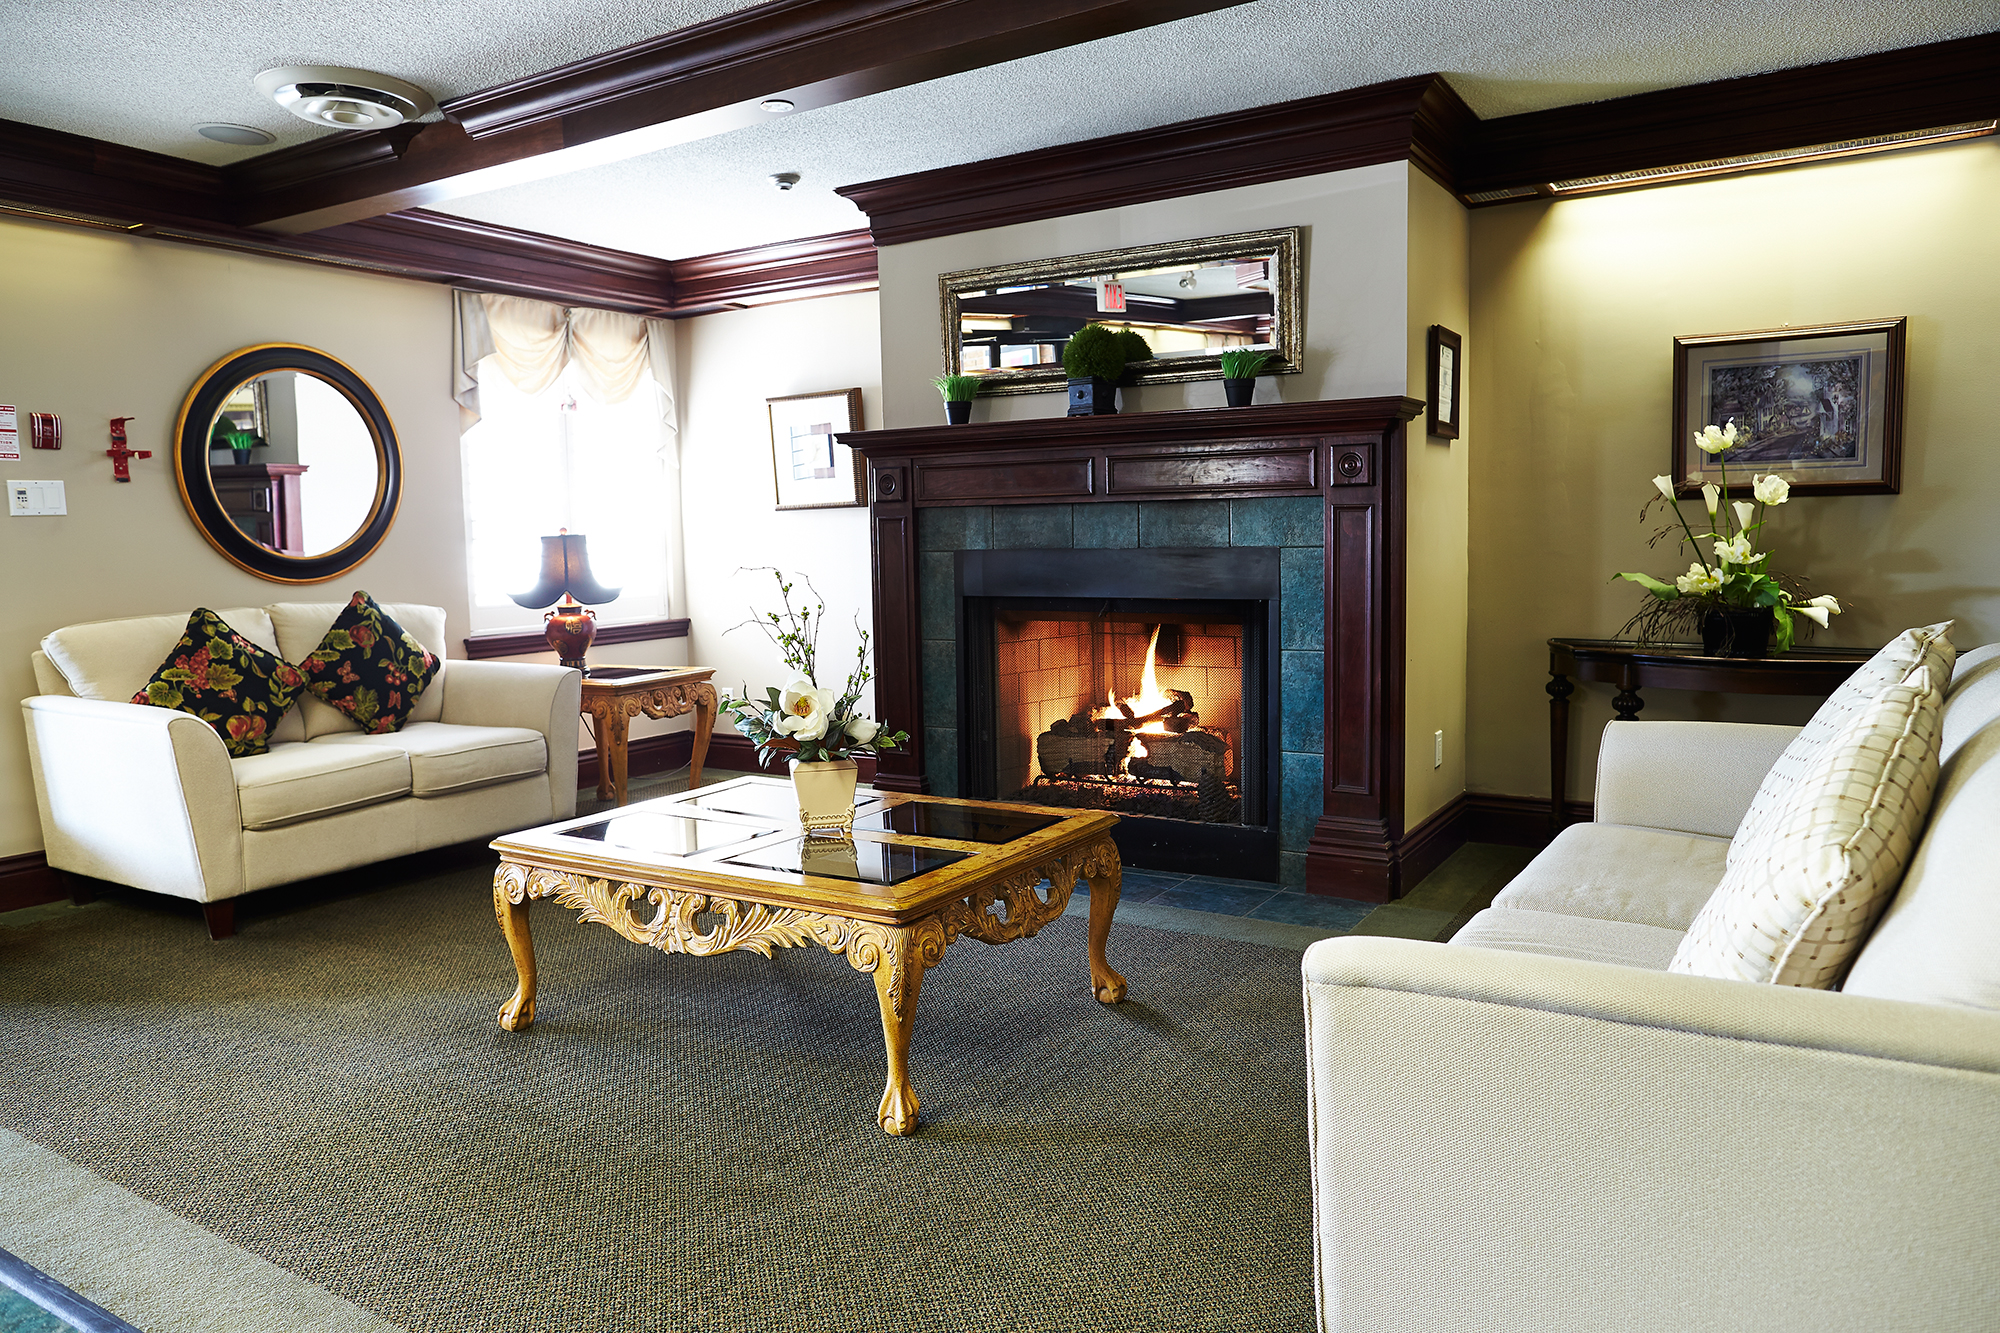 The fire place at Heatherwood Retirement Residence in St. Catharines